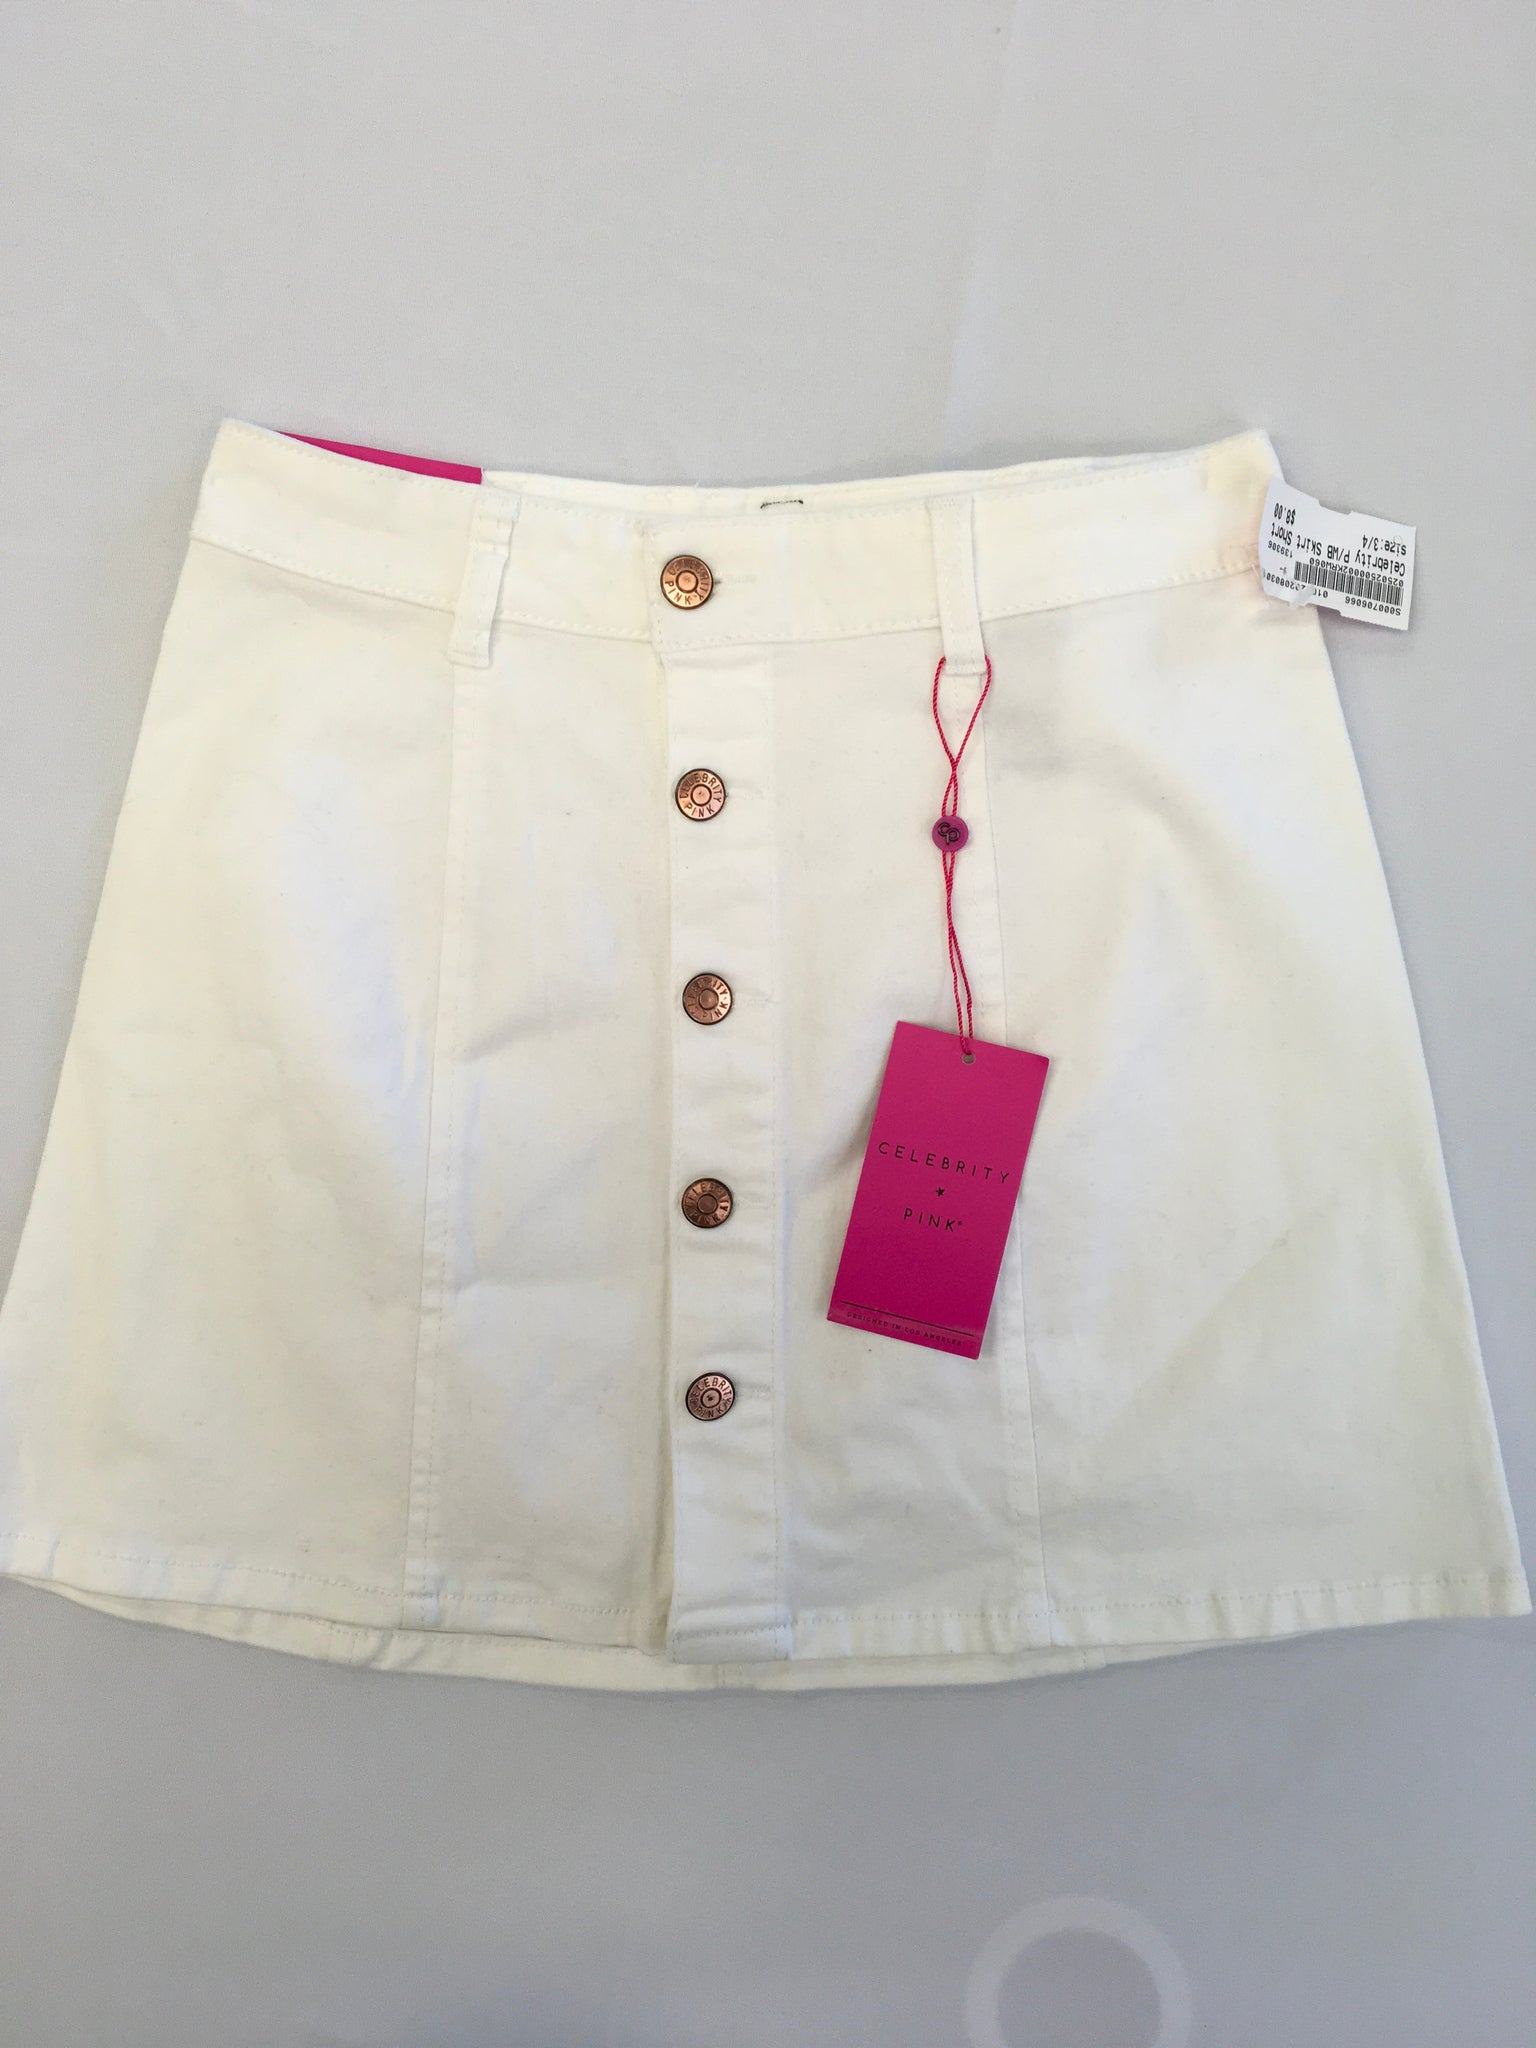 Celebrity Pink Womens Short Skirt Size 3/4 - Plato's Closet